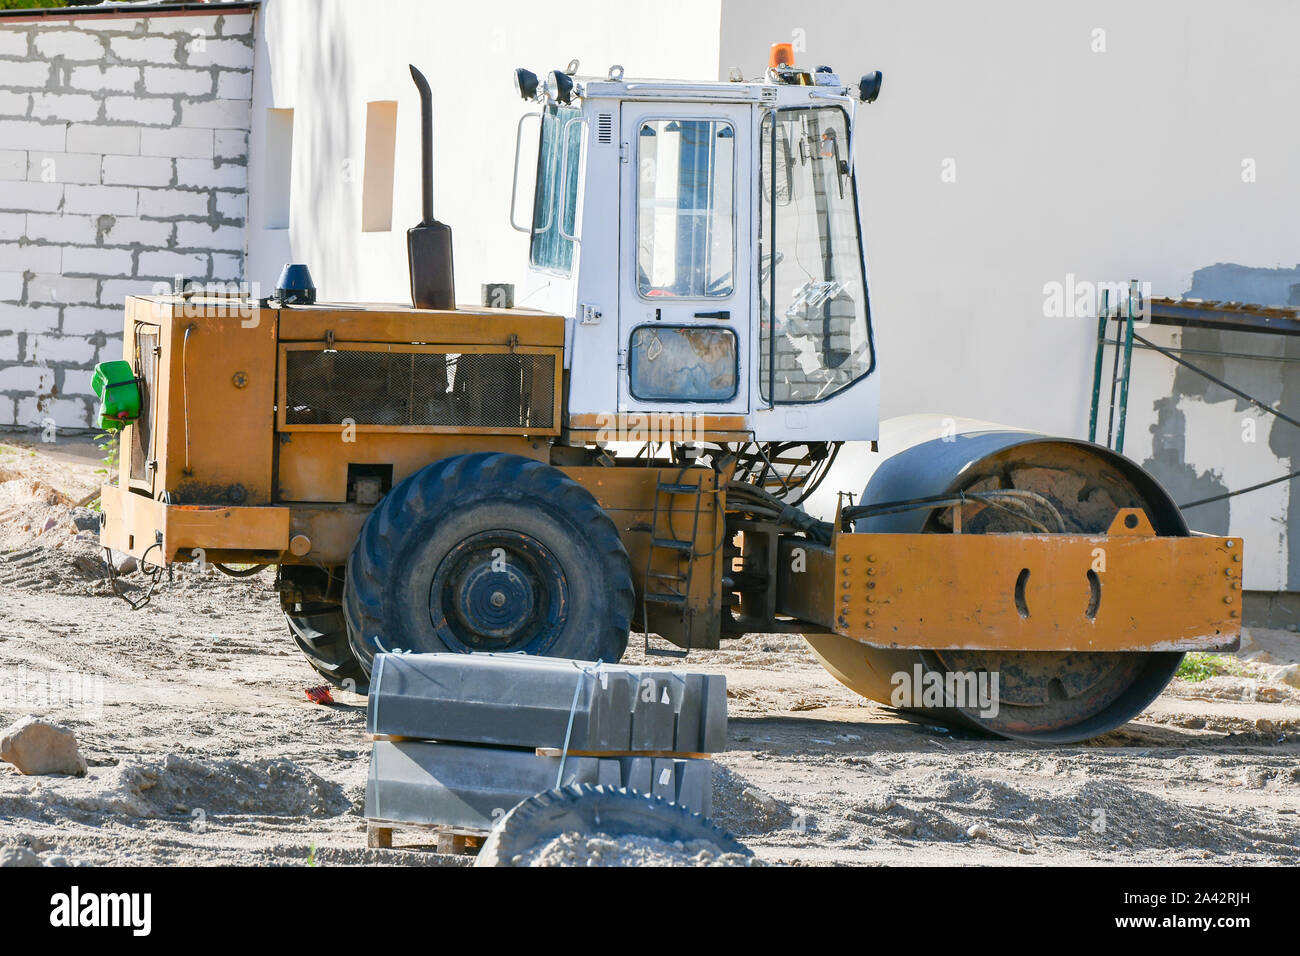 Heavy vibratory roller. road stacker. Orange color. Stock Photo